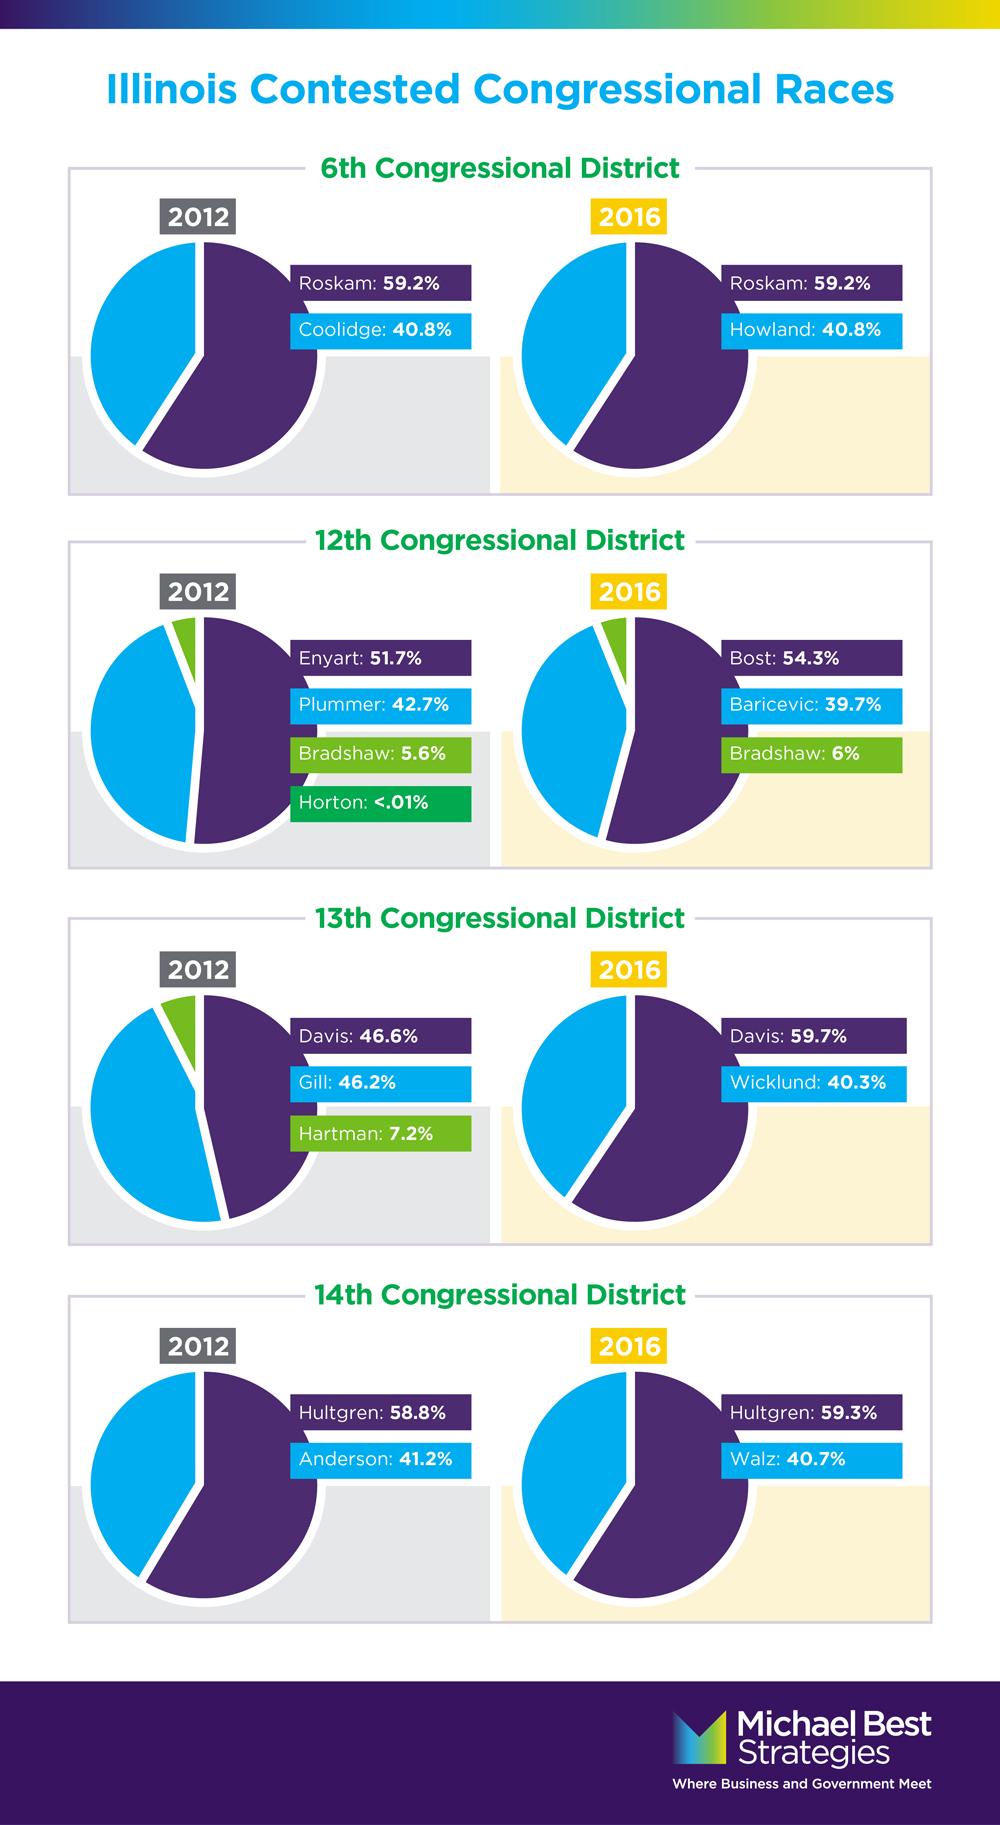 Illinois Contested Congressional Races